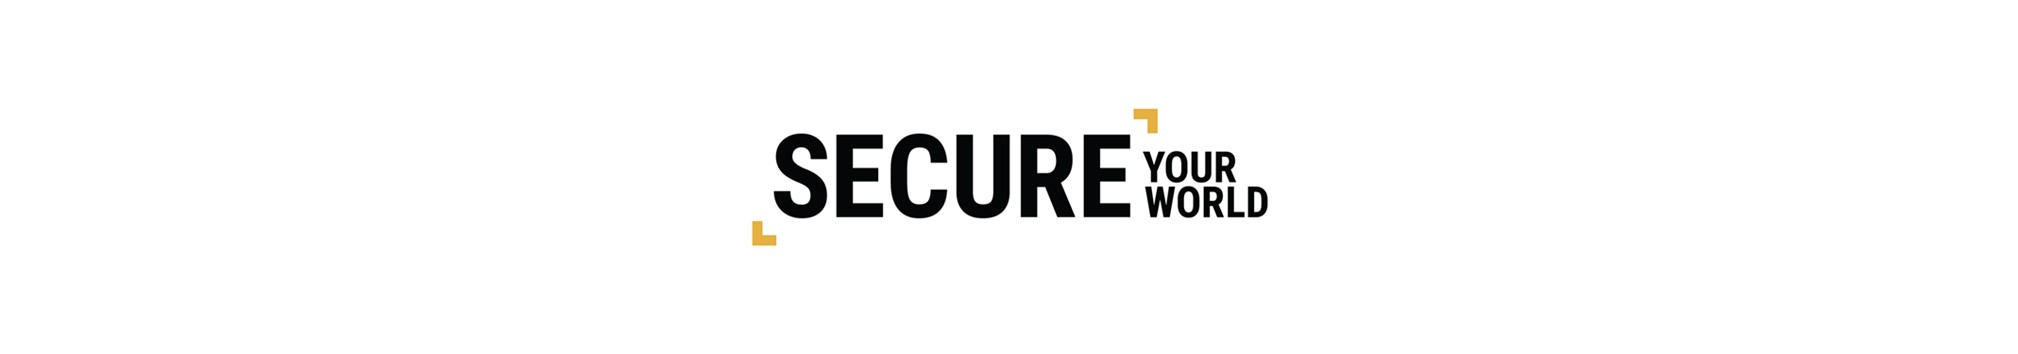 Secure Your World